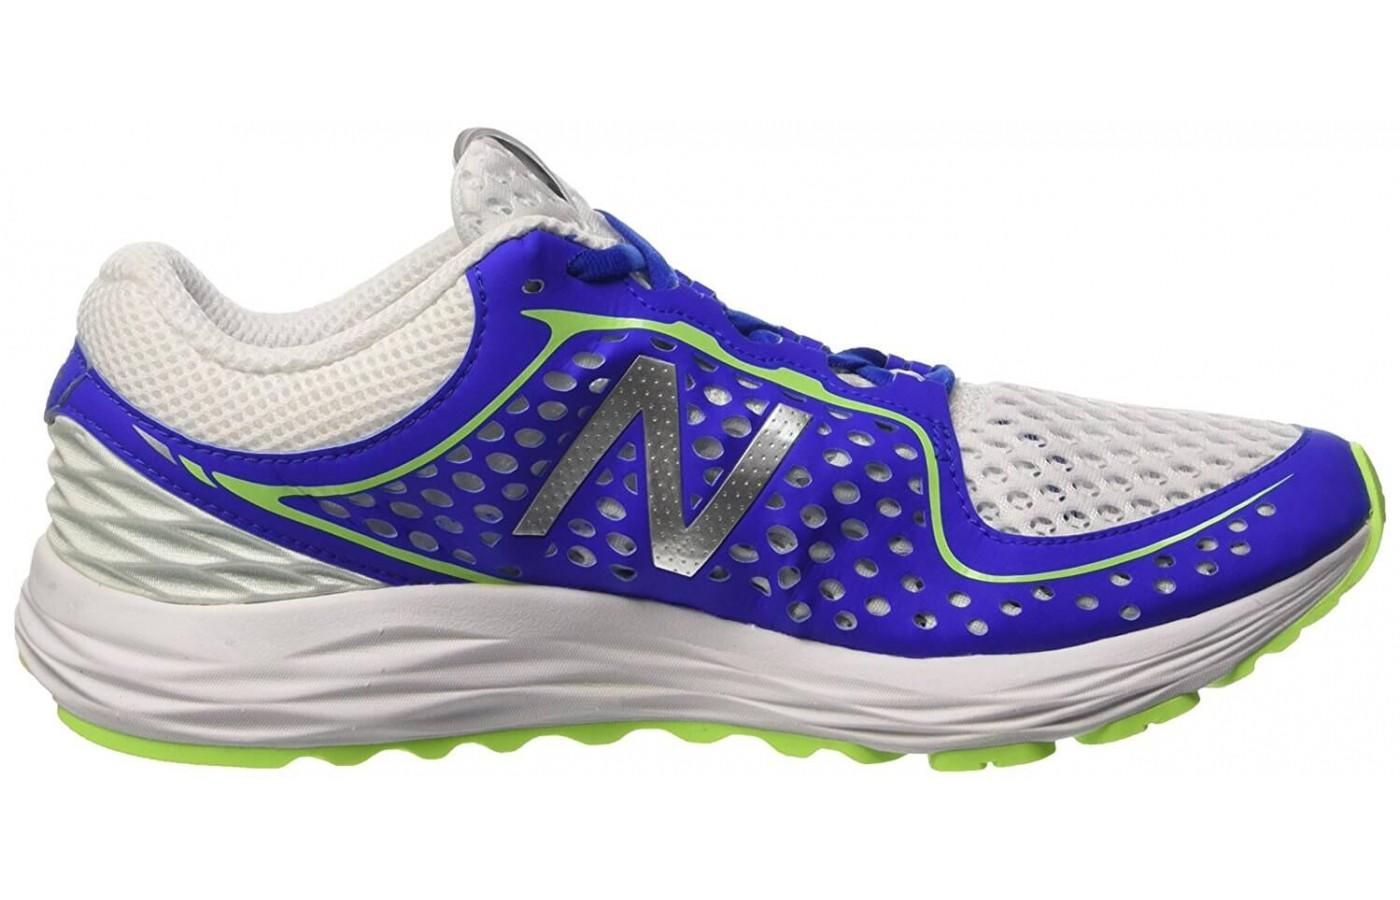 promo code a8dbb 11083 New-Balance-Vazee-Breathe-Right-Side-slider1400x900.jpg